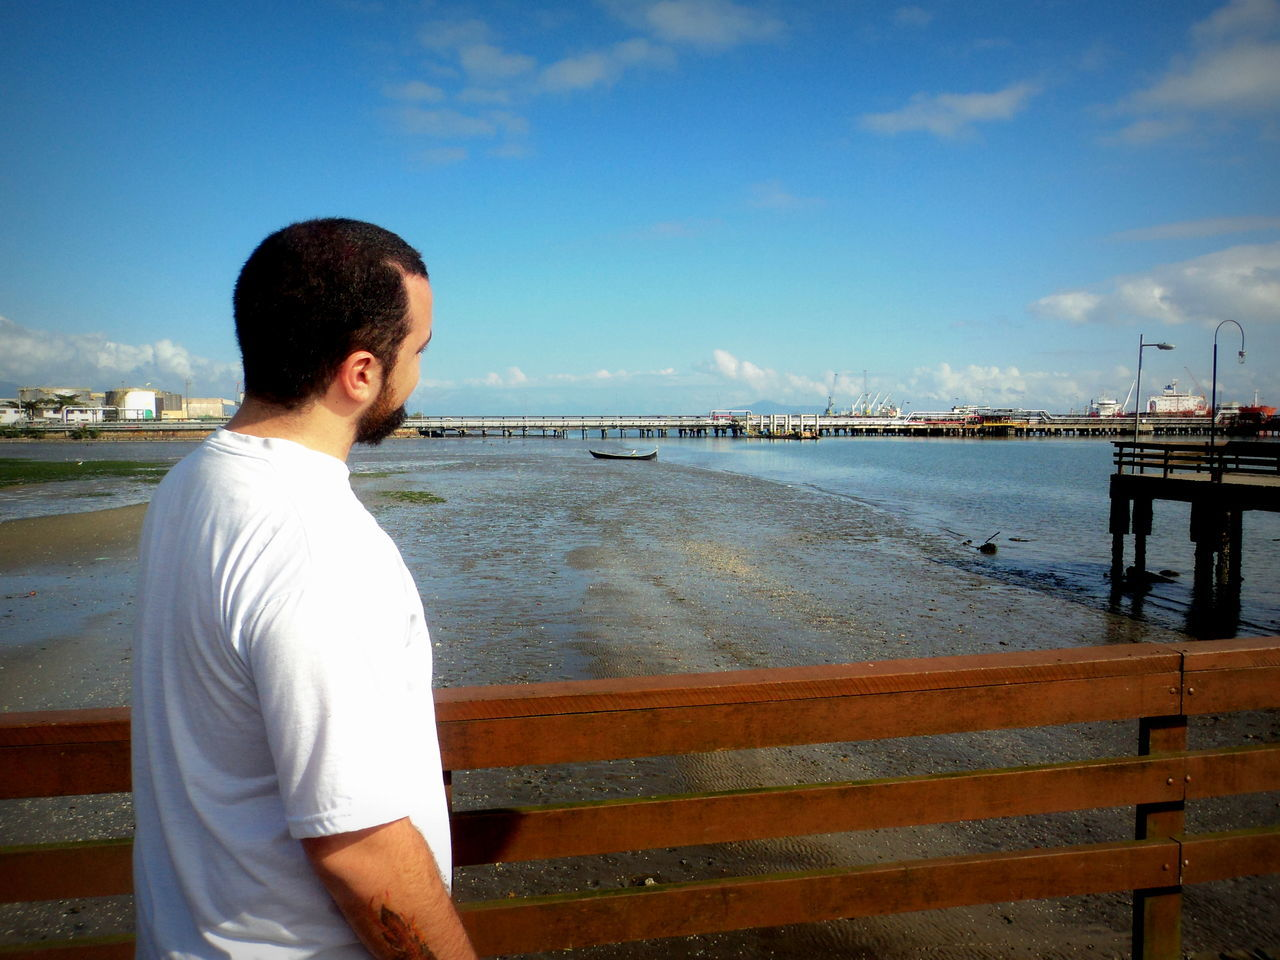 real people, water, sky, sea, cloud - sky, one person, leisure activity, lifestyles, rear view, casual clothing, outdoors, standing, nature, men, day, beach, beauty in nature, vacations, retaining wall, scenics, nautical vessel, young adult